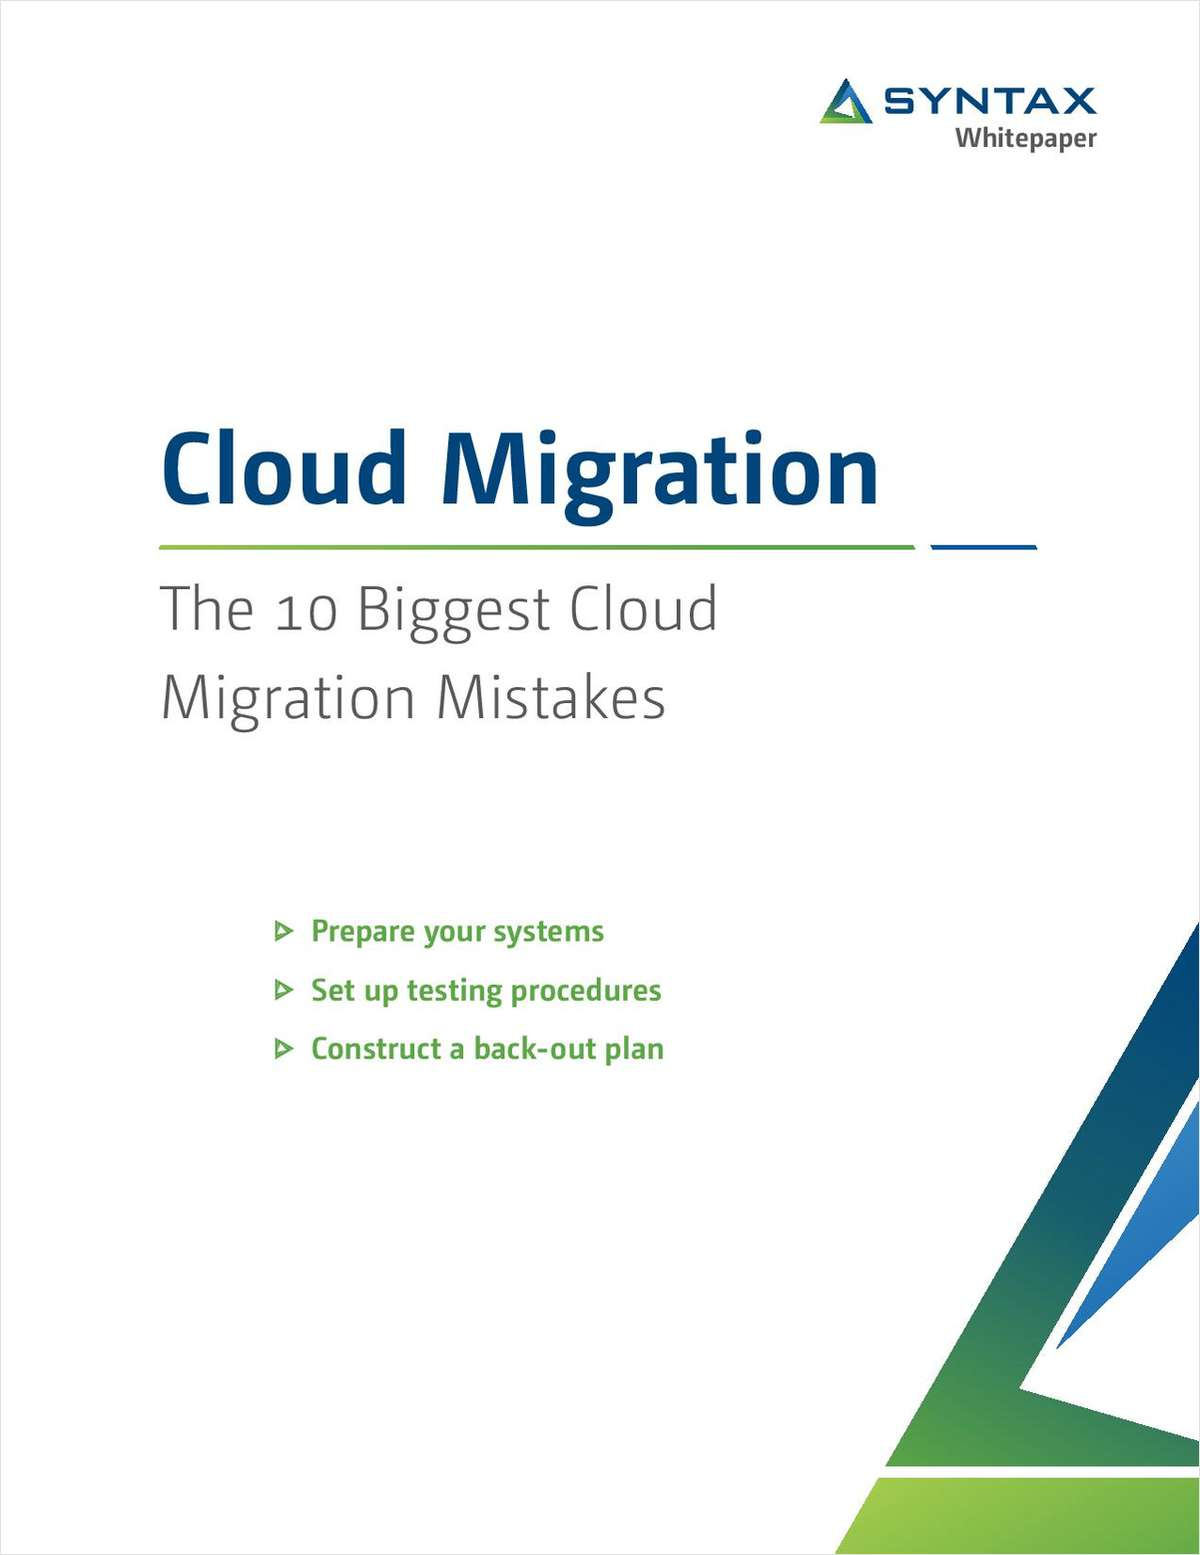 The 10 Biggest Cloud Migration Mistakes - GISuser com